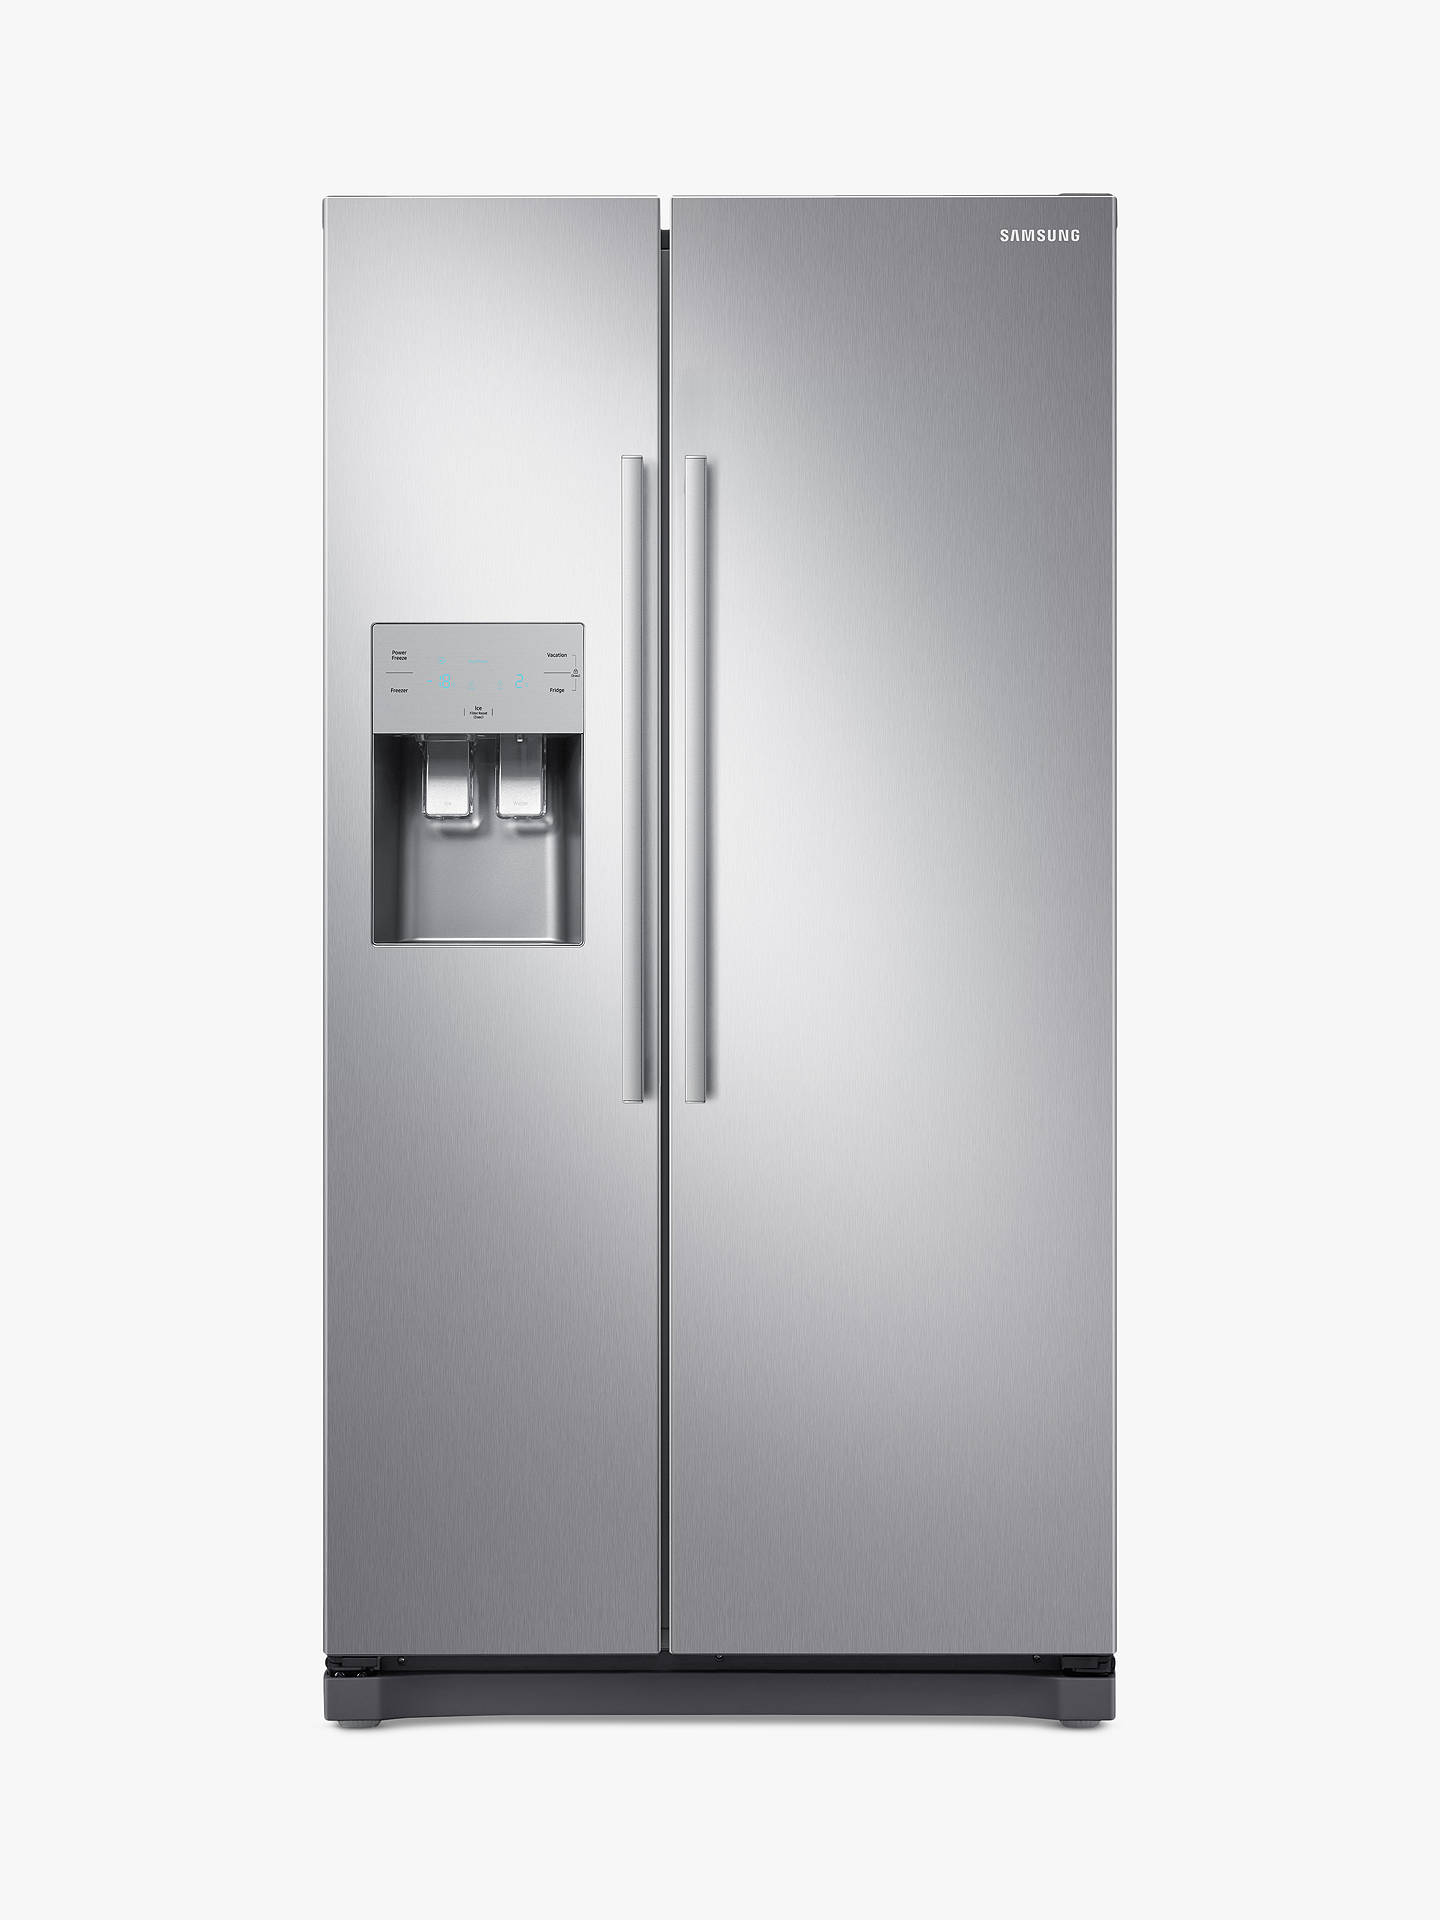 Samsung Rs50 N3513 Sl Freestanding American Style Fridge Freezer, A+ Energy Rating, 91cm Wide, Silver by Samsung